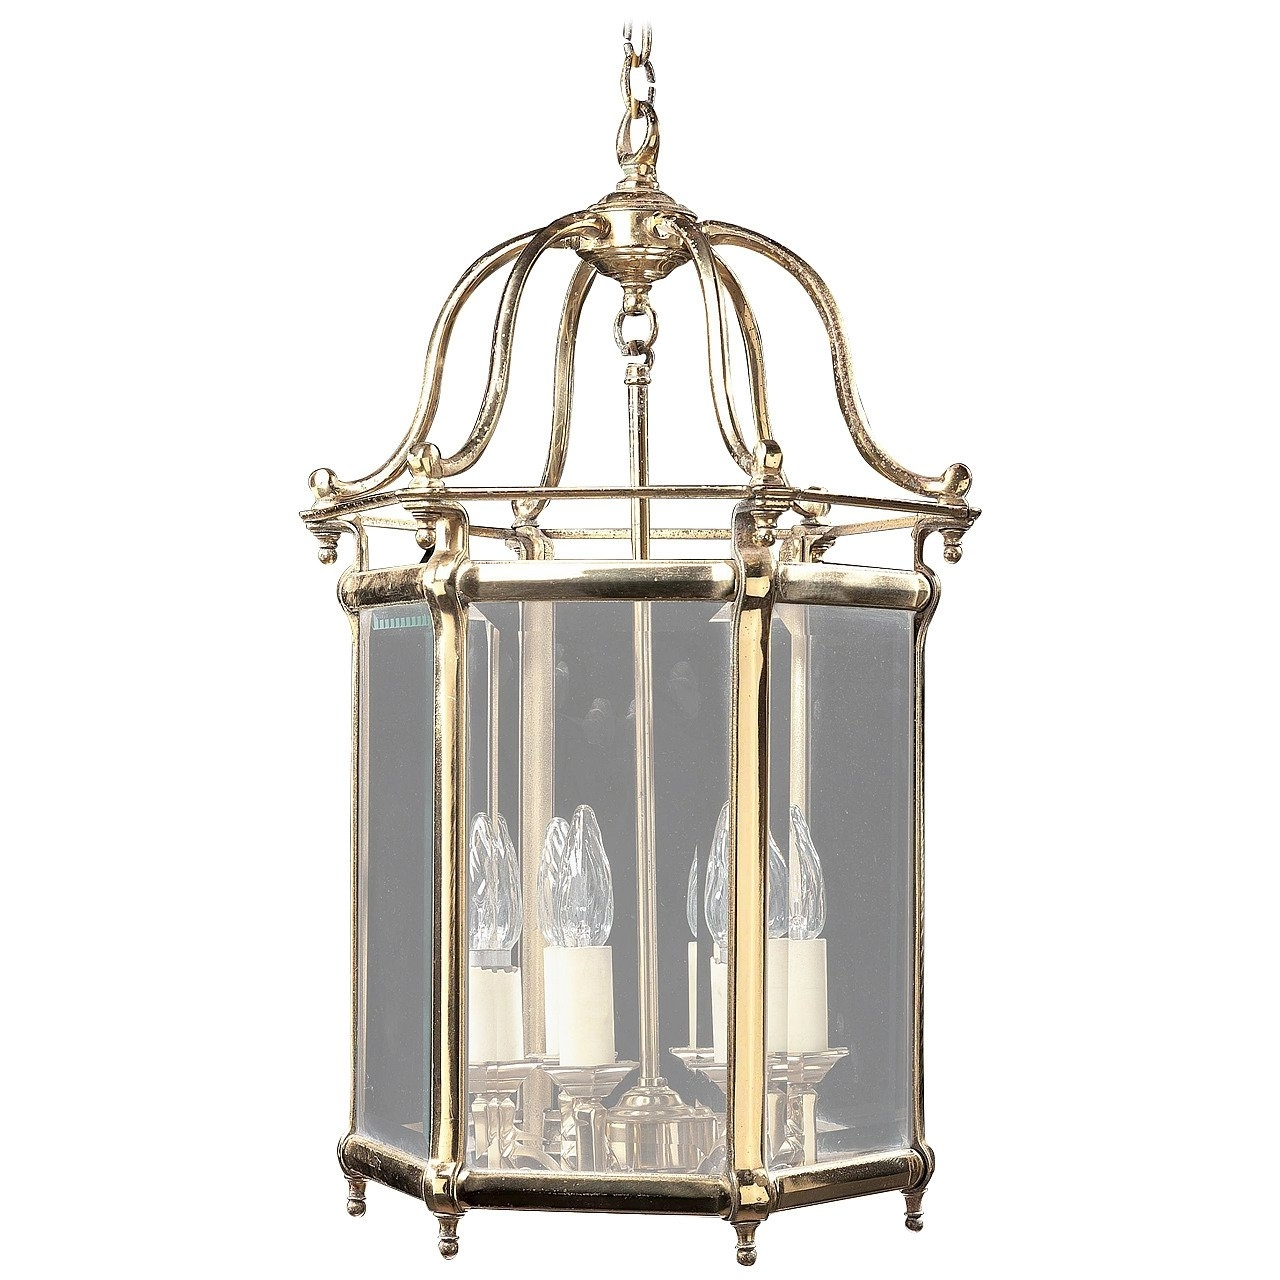 Jumbo Outdoor Lanterns For Recent Brass Outdoor Lantern Porch Light Exterior Applique Sconce, 20Th (View 7 of 20)